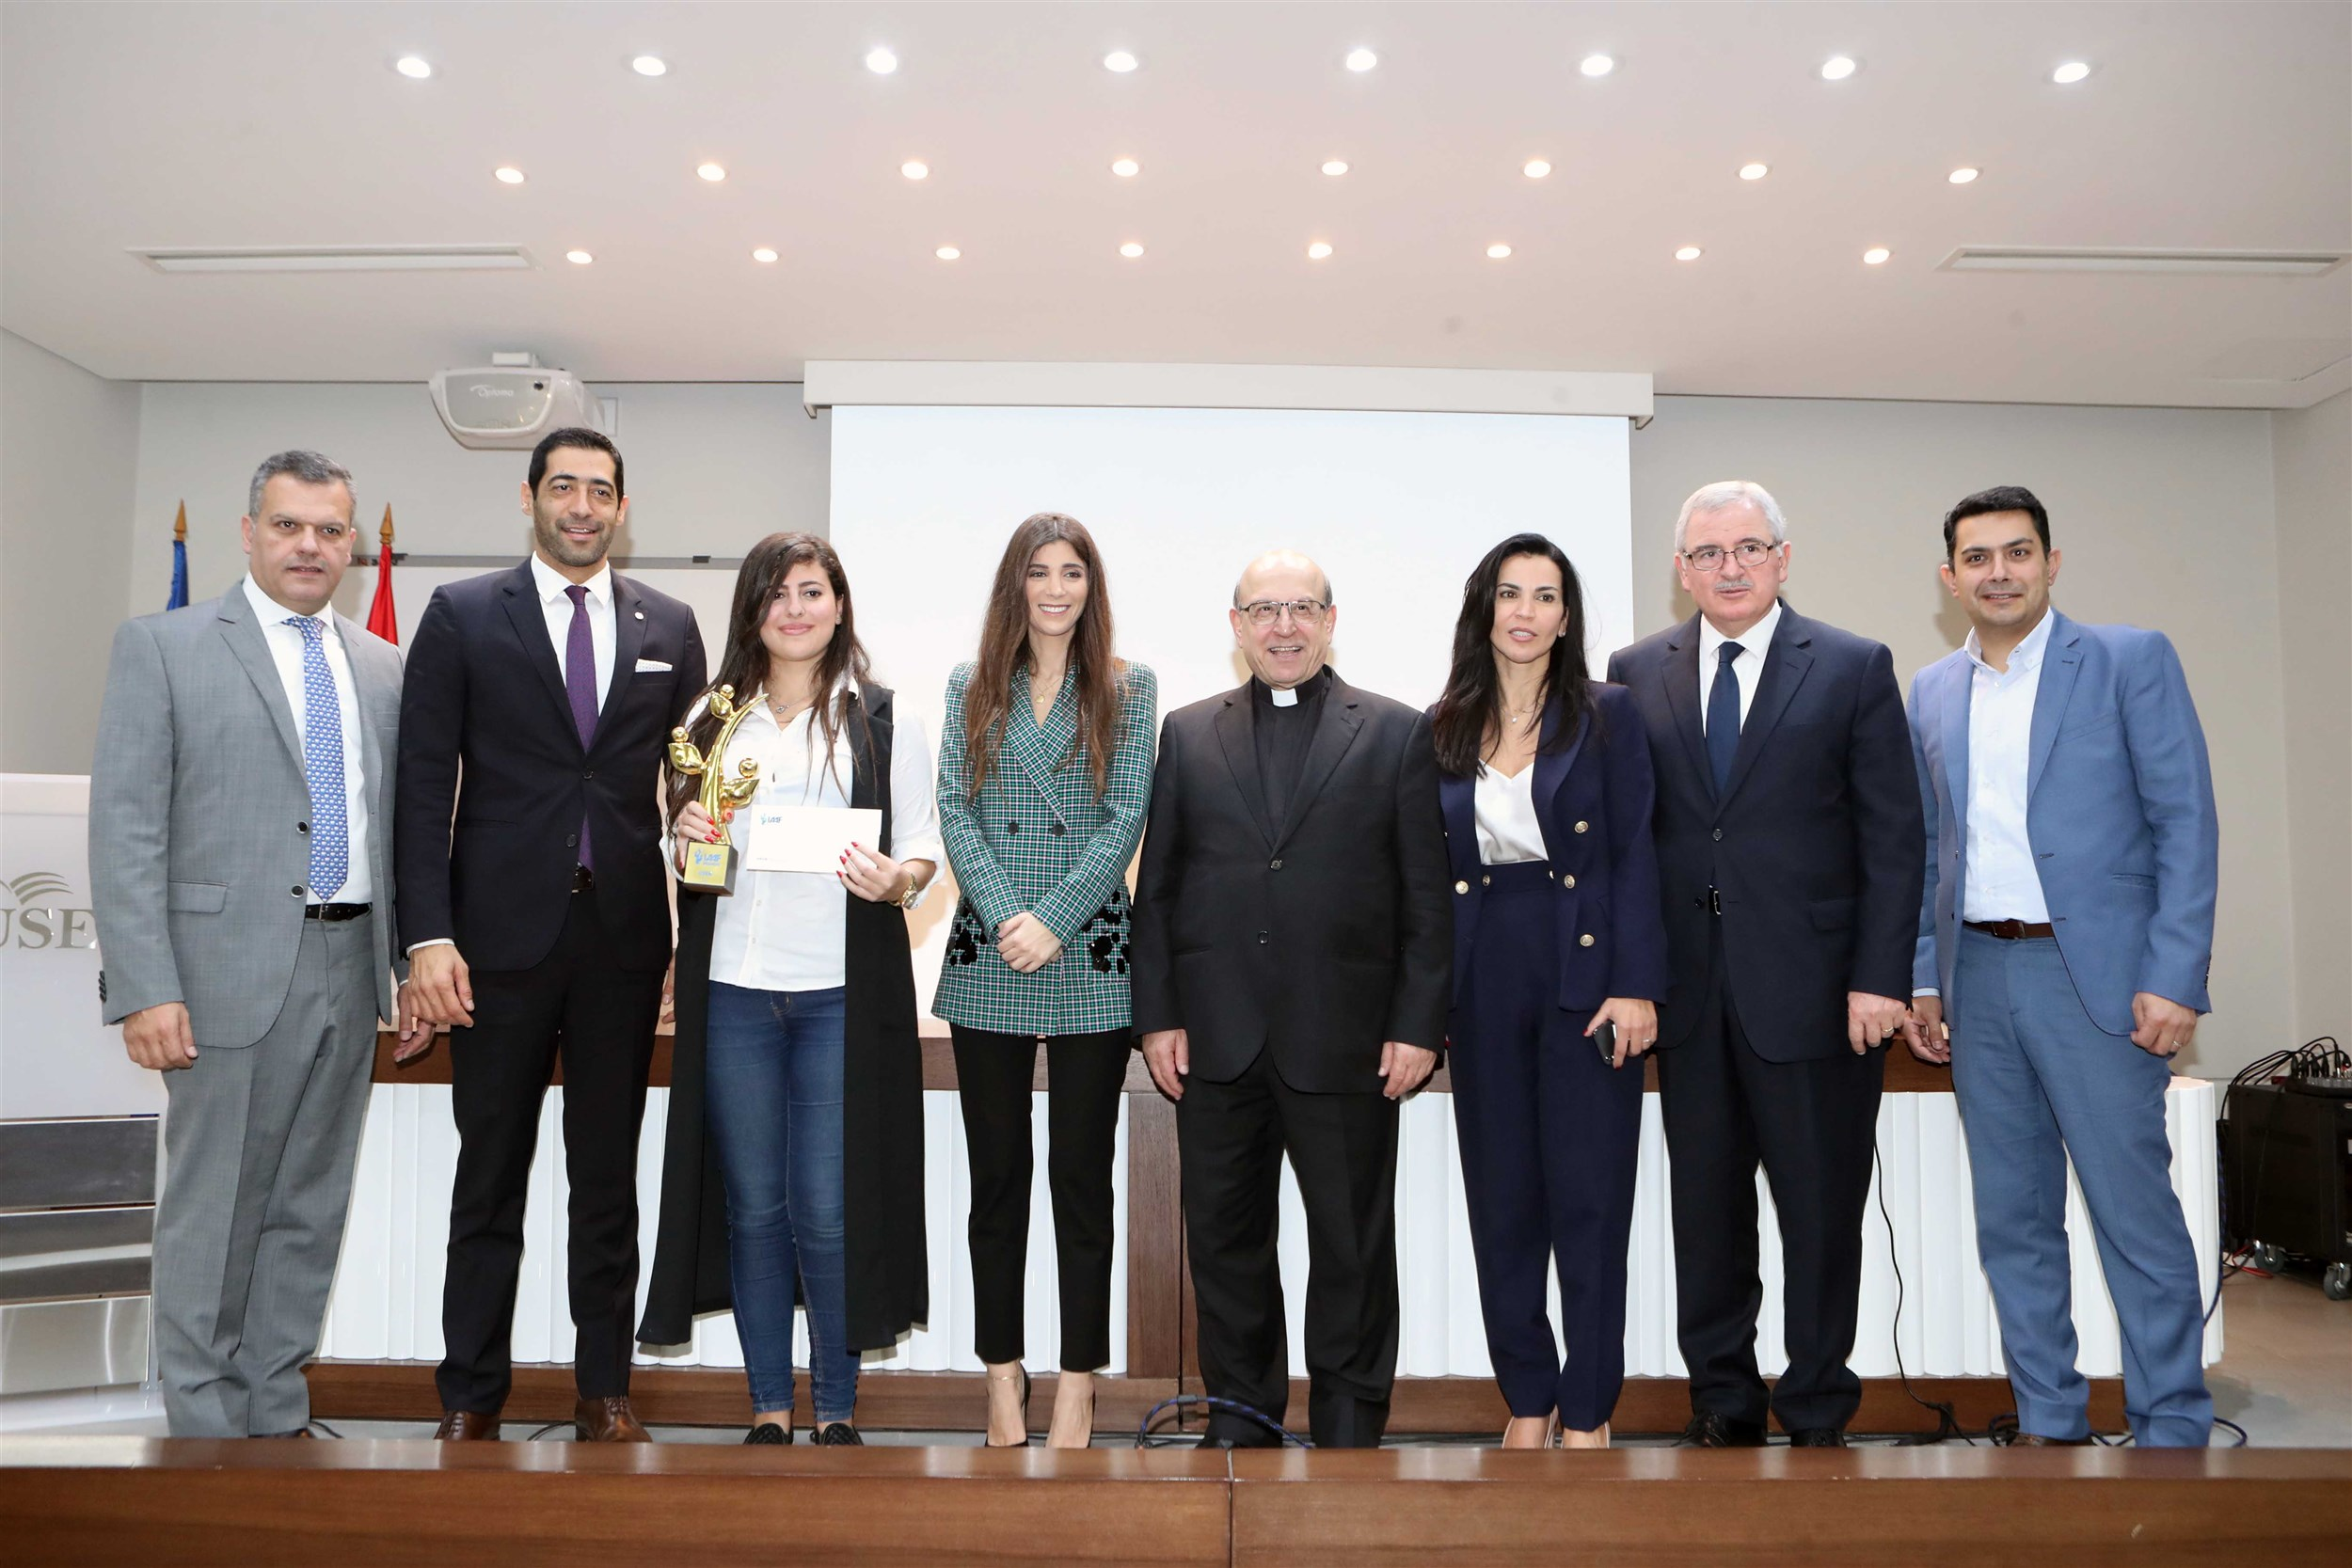 the winner of the holy spitiy univesity of kaslik sarah abi abdallah shares the stage with the jury and mrs. inas al jarmakani in order to receive her prize and trophy, because she dared to dream!